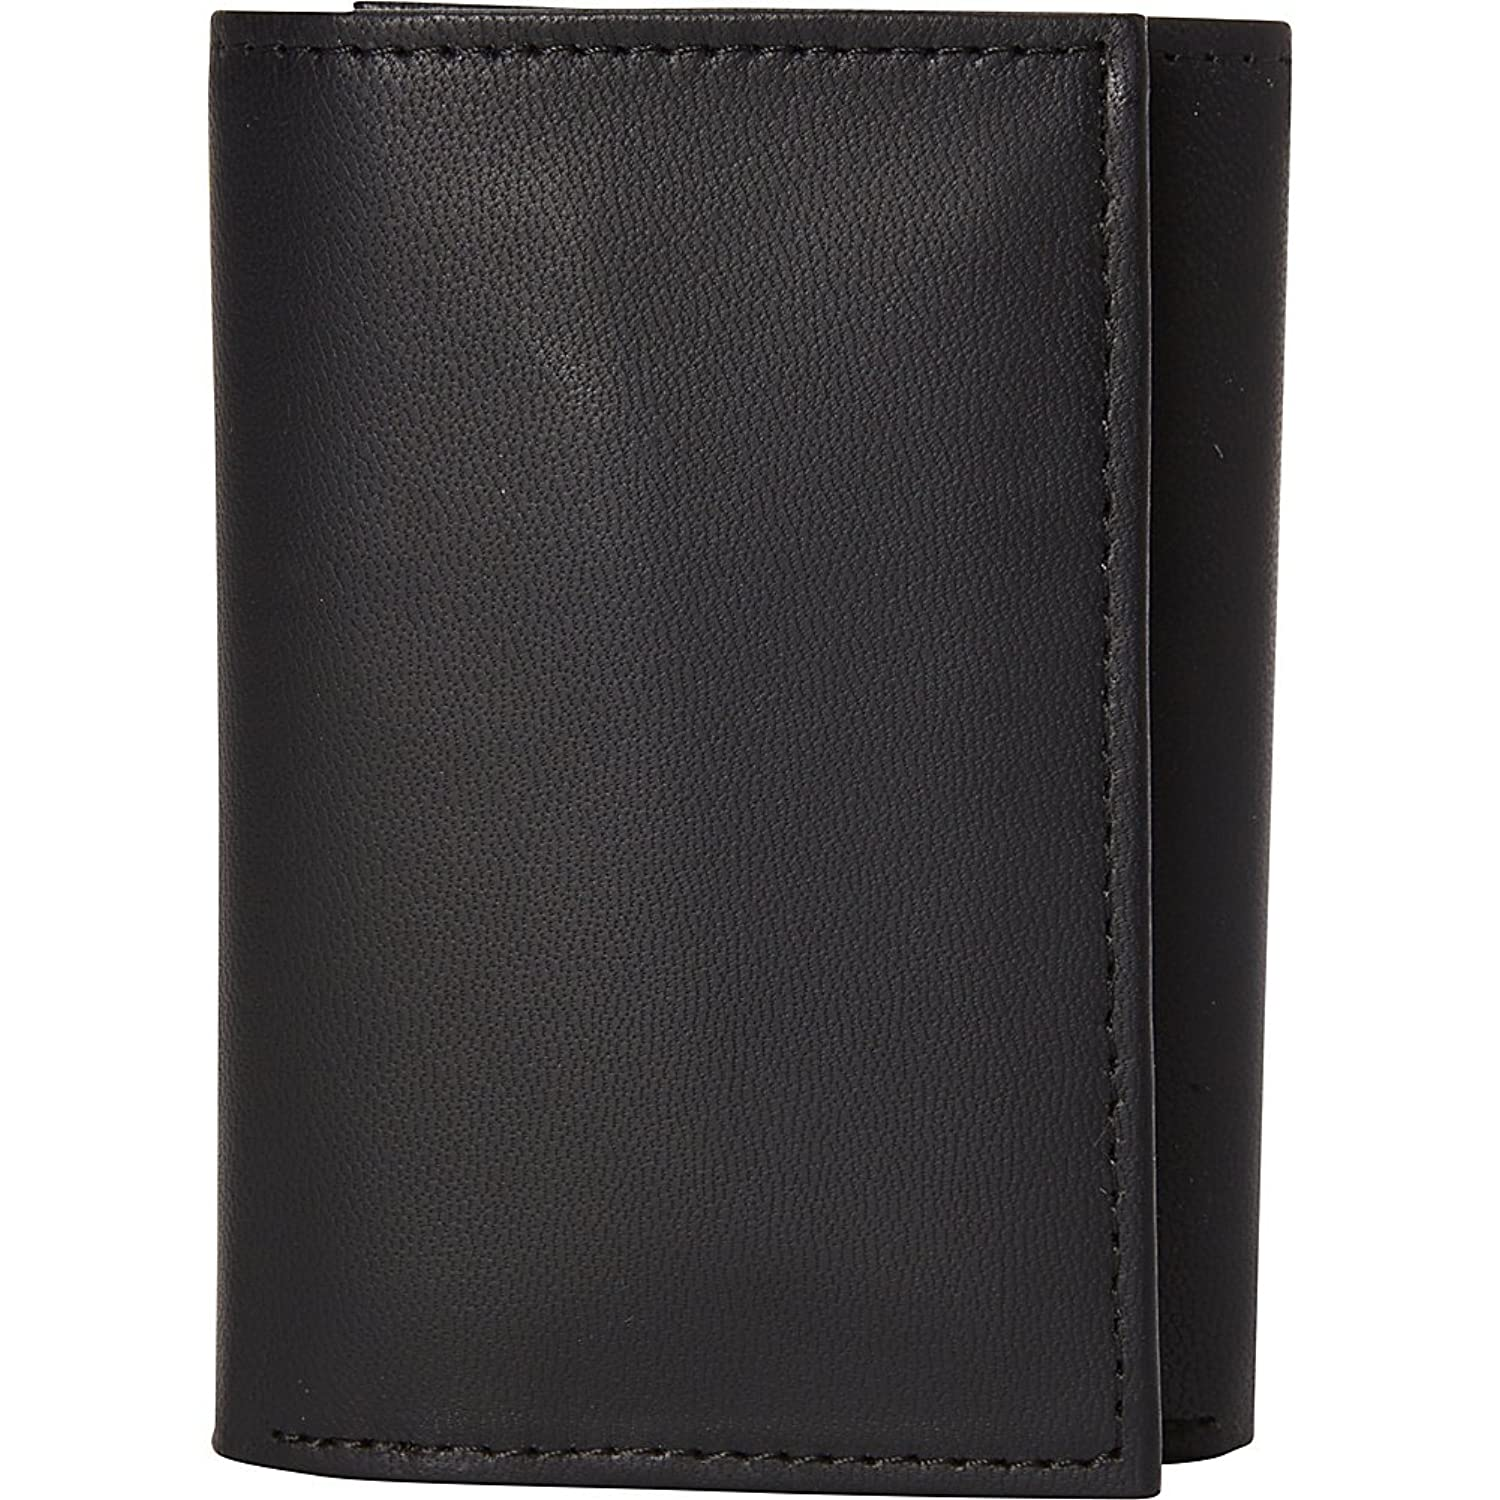 Amazon.com: Buxton Wallets Deluxe Snap Card Case for Women (Black ...